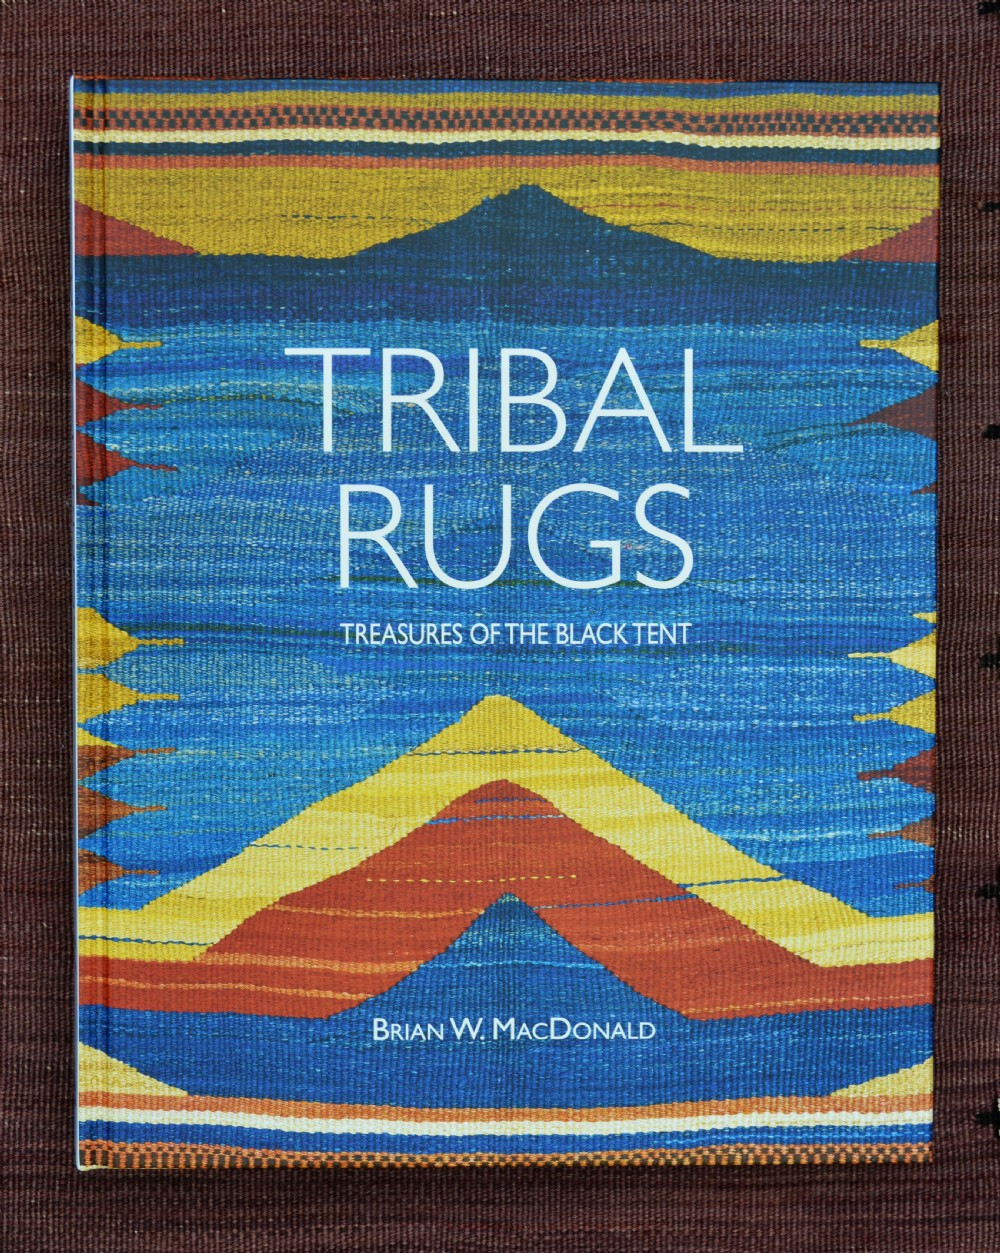 'tribal rugs treasures of the black tent' by brian w macdonald